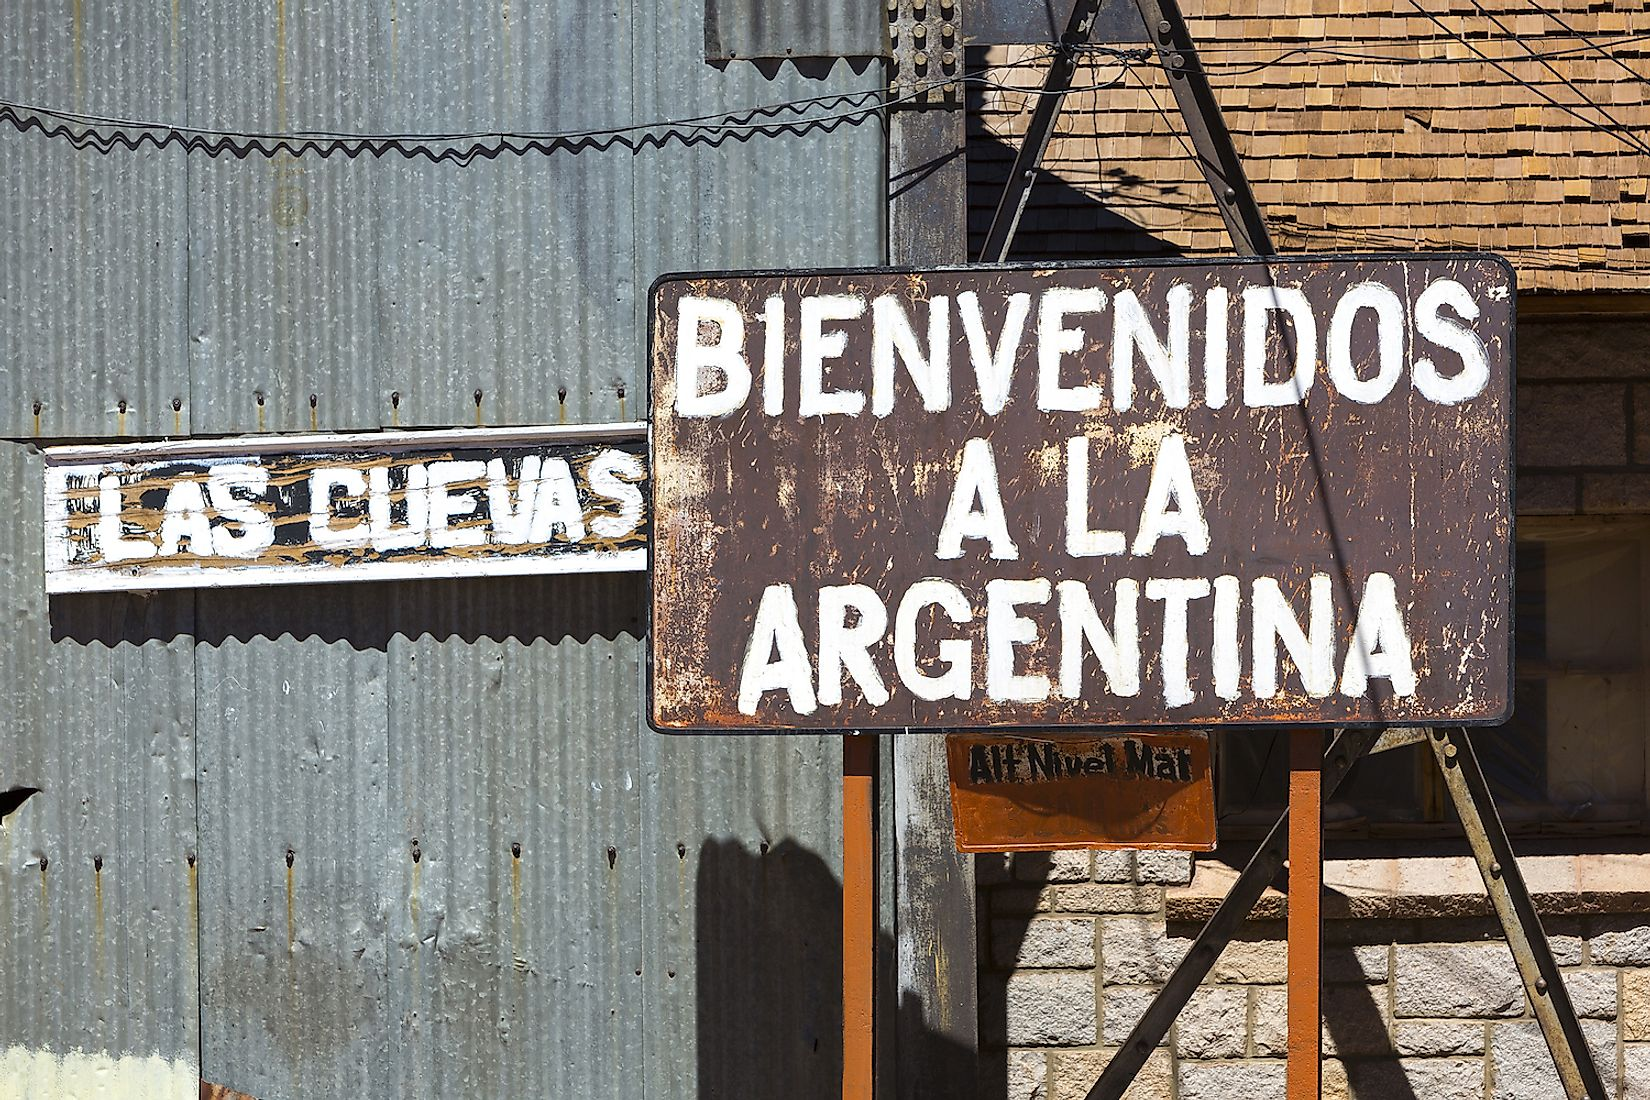 Rusted old retro sign saying welcome to Argentina written in Spanish at an old train station at the border of Chile and Argentina near the Aconcagua National Park. Image credit: Watch the World/Shutterstock.com